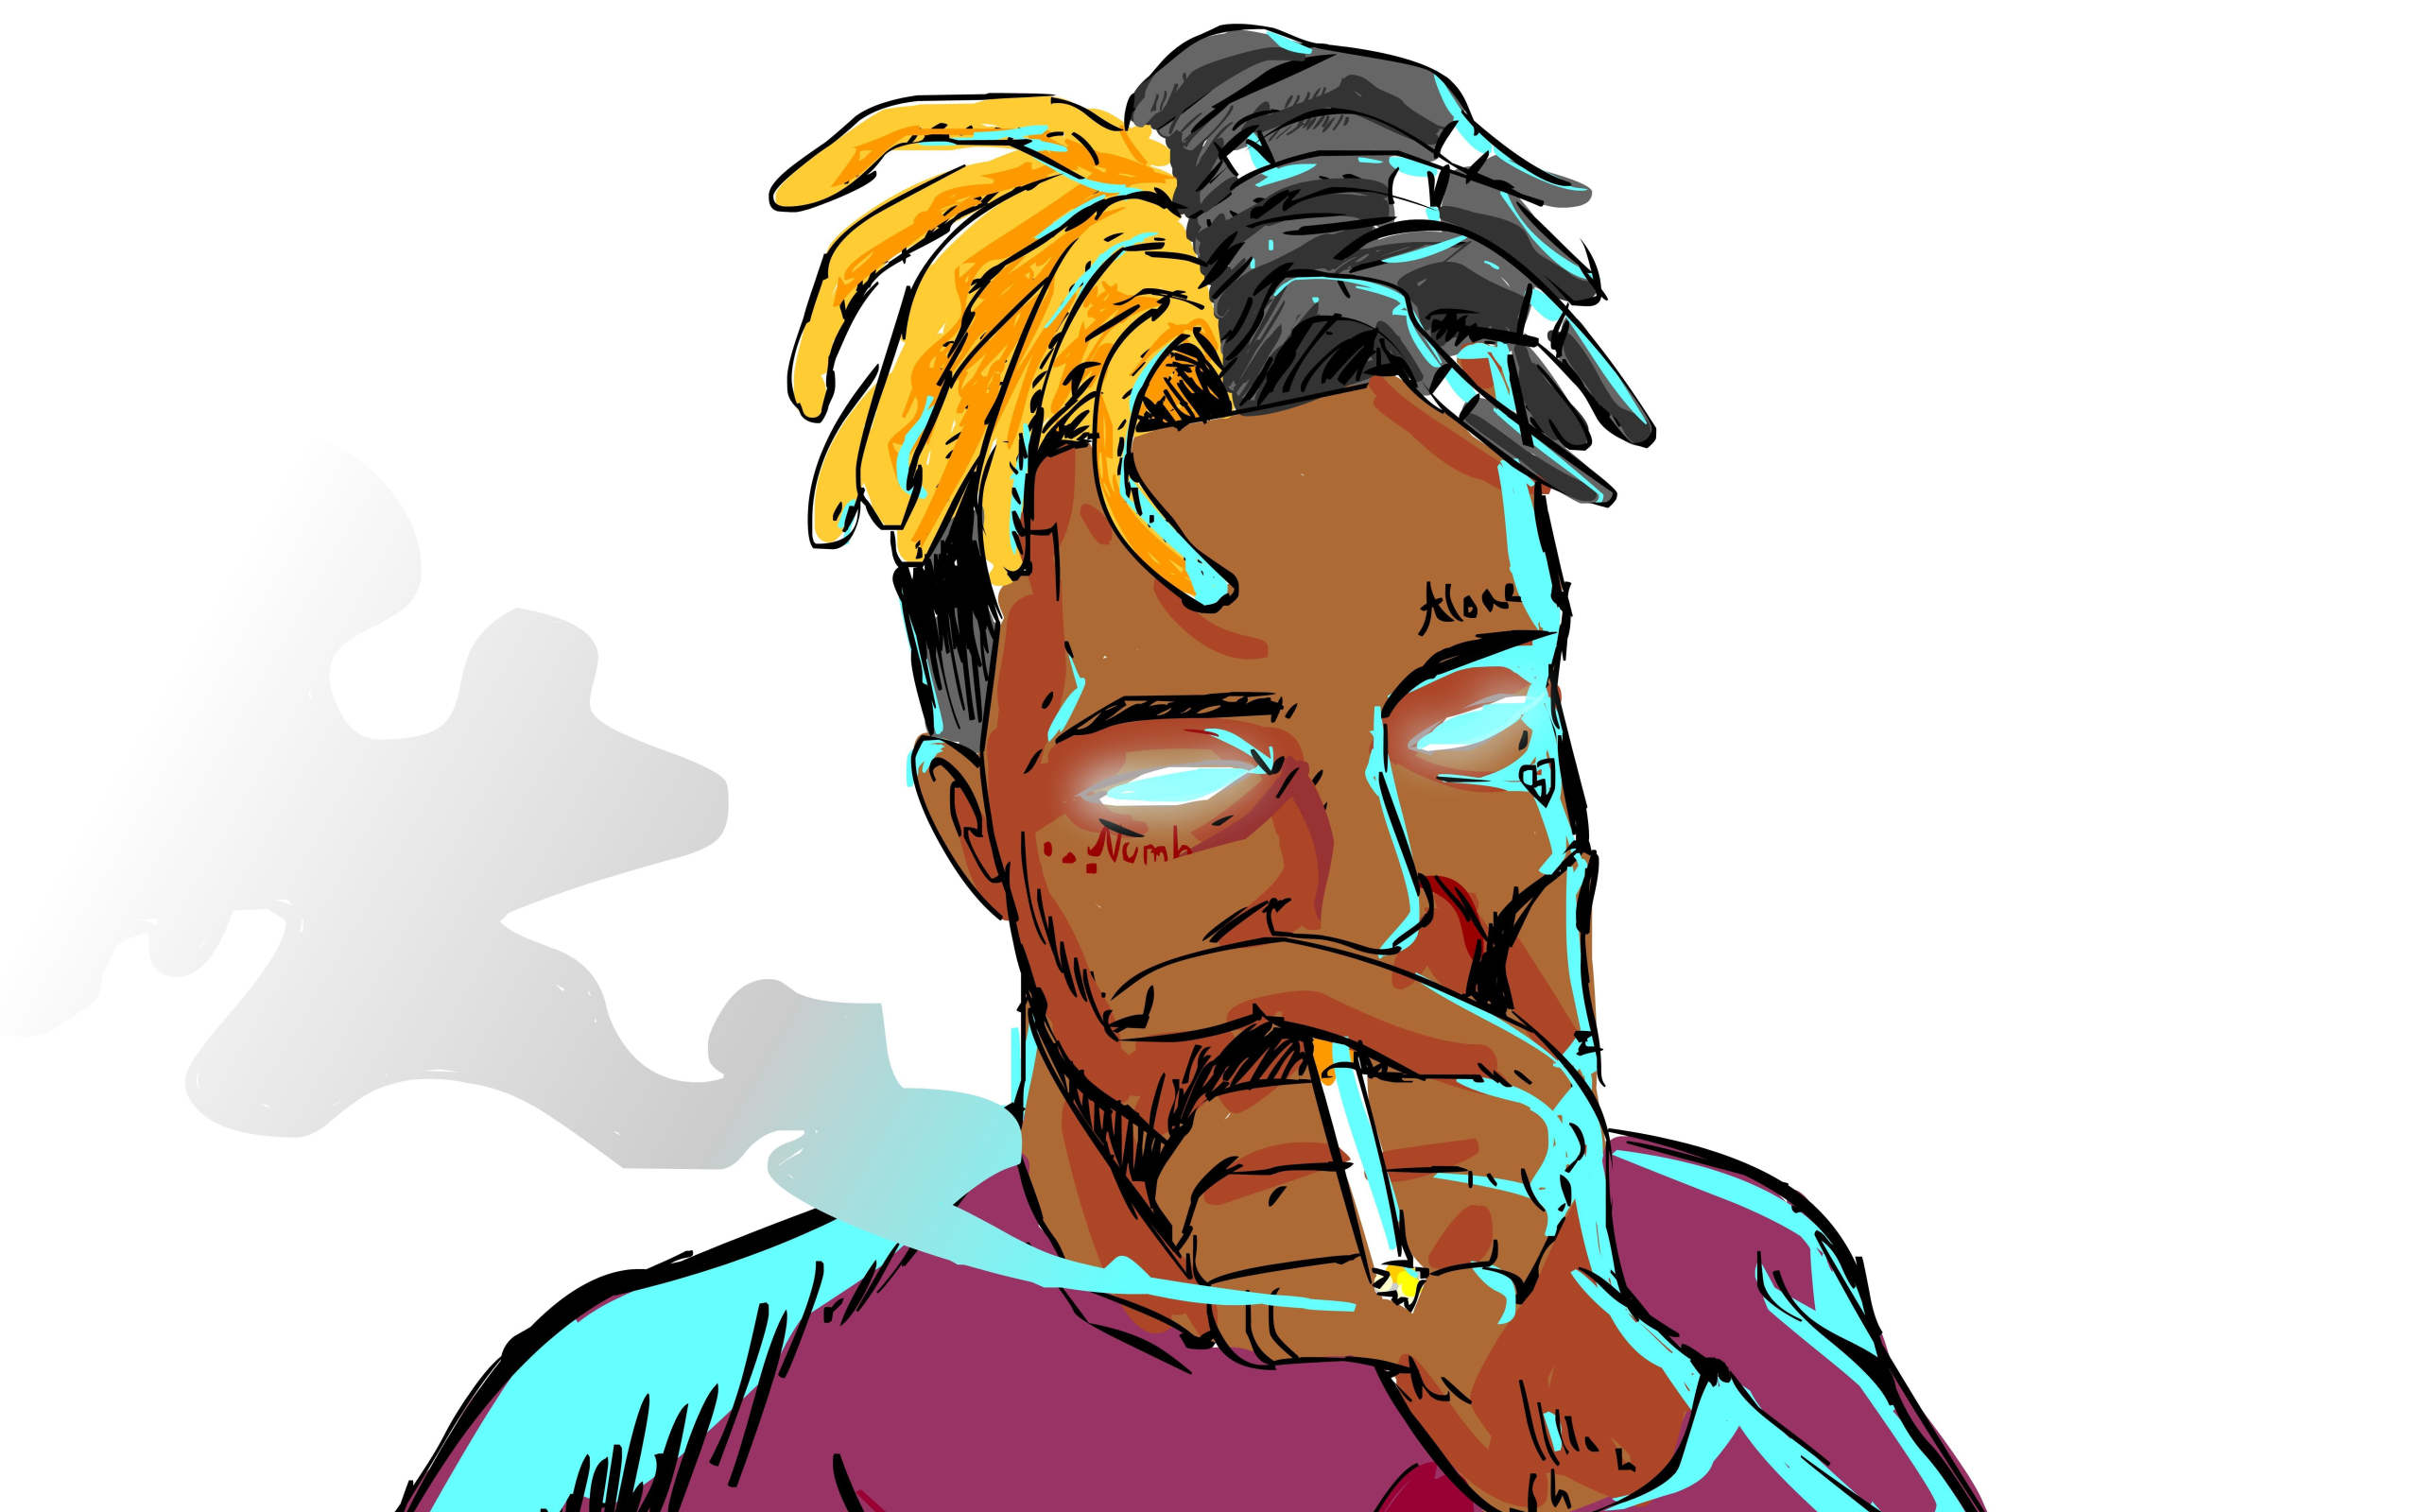 Wallpaper Music Xxxtentacion Art Smoke Desktop Picture Hd Photo